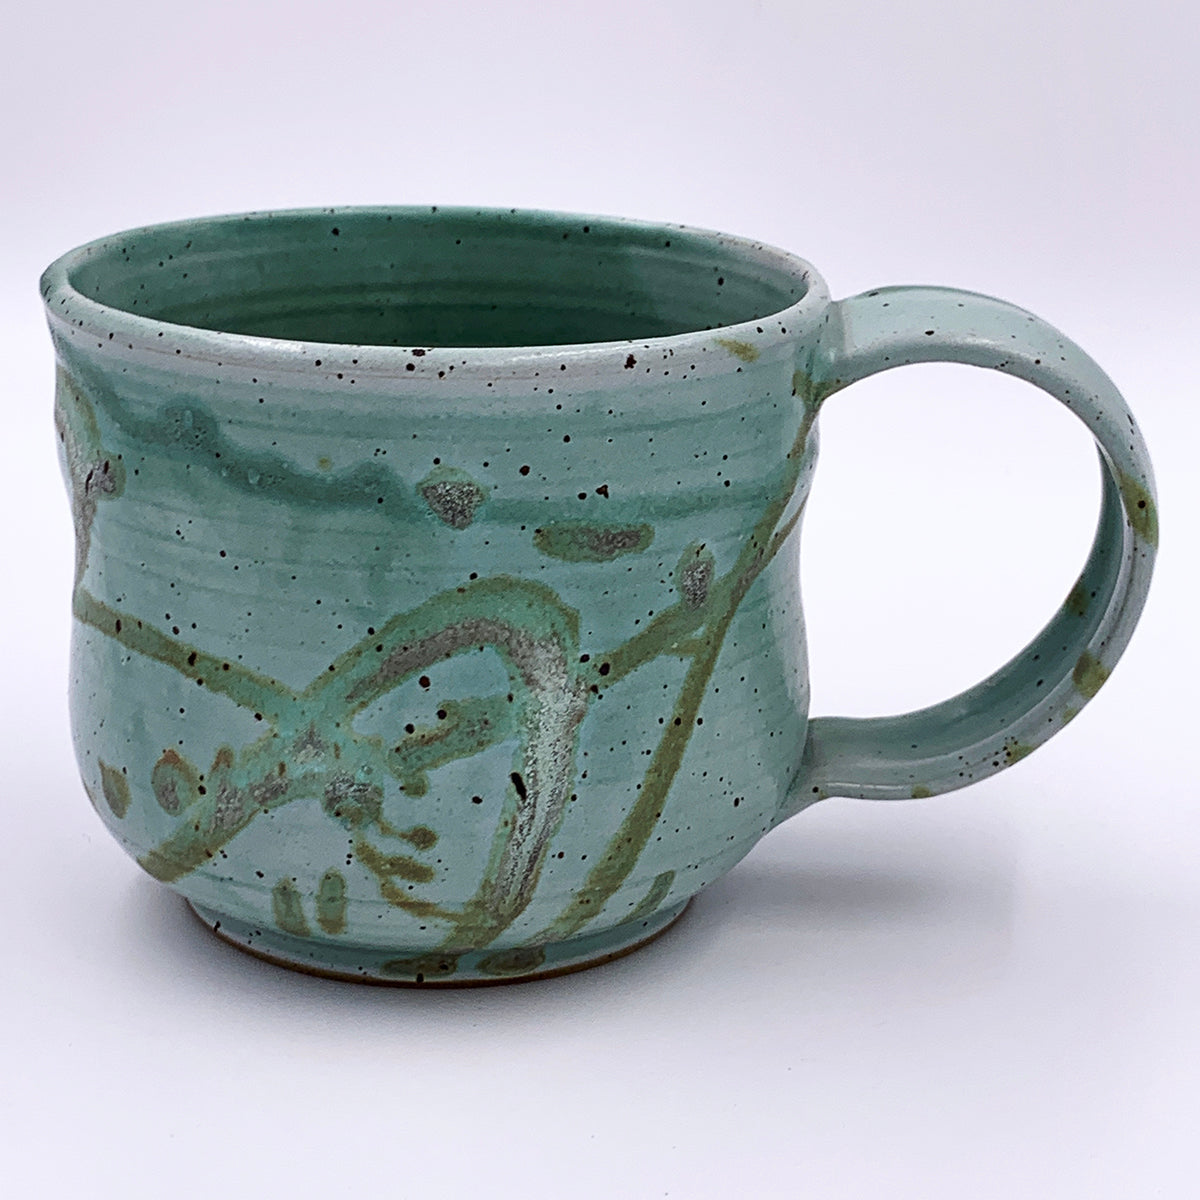 One of a kind, 18 oz Mug, Emerald Silt Splatter